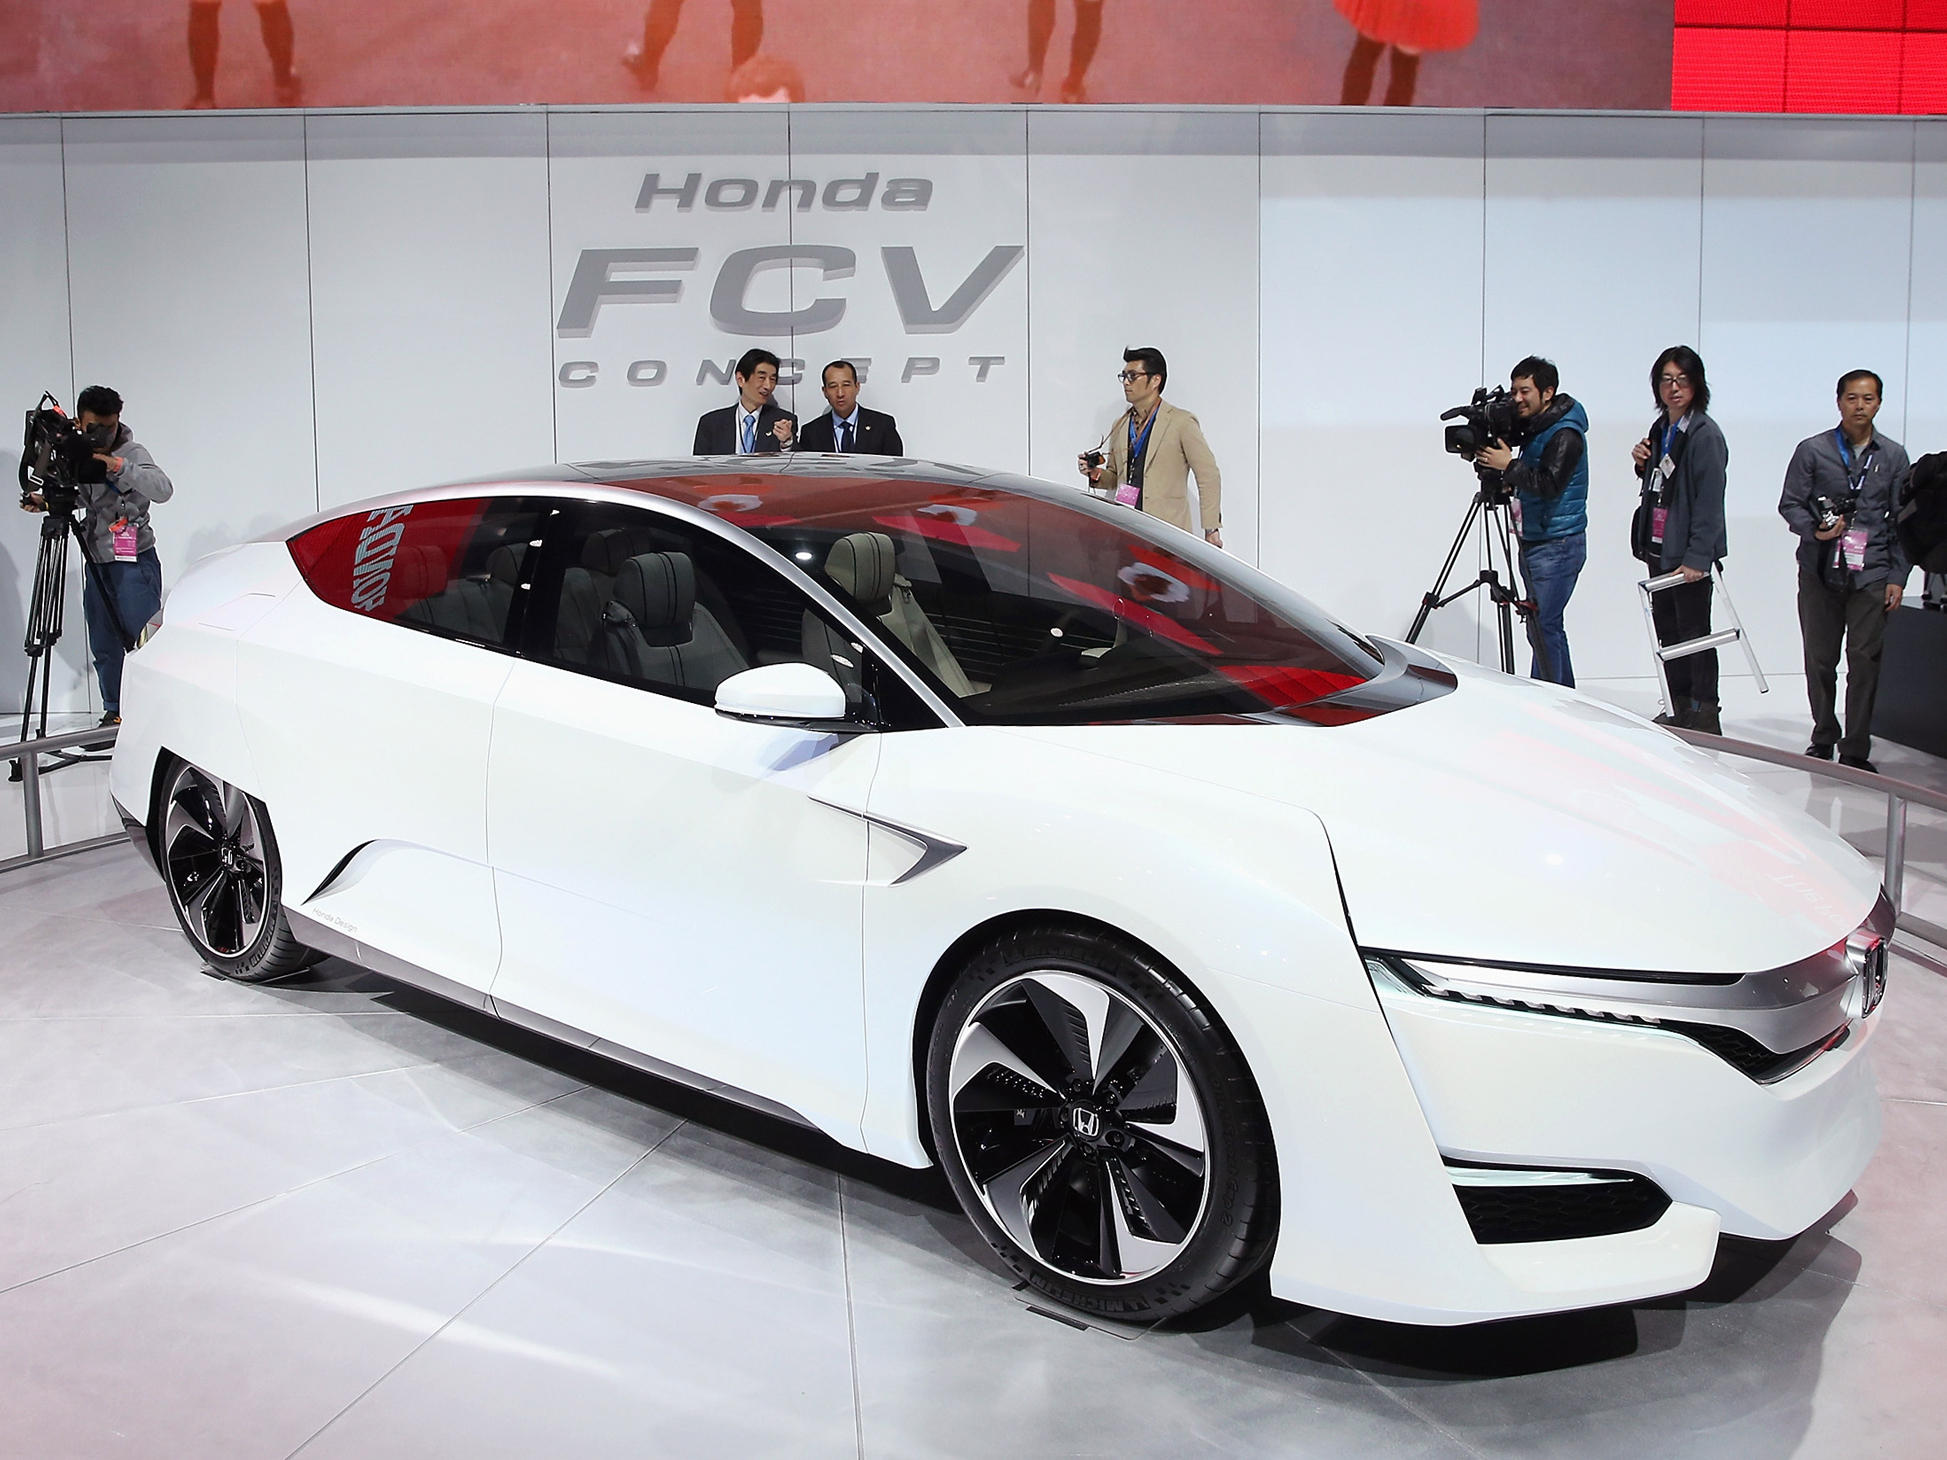 Concept Cars Once Outlandish Now Vital To Auto Industry